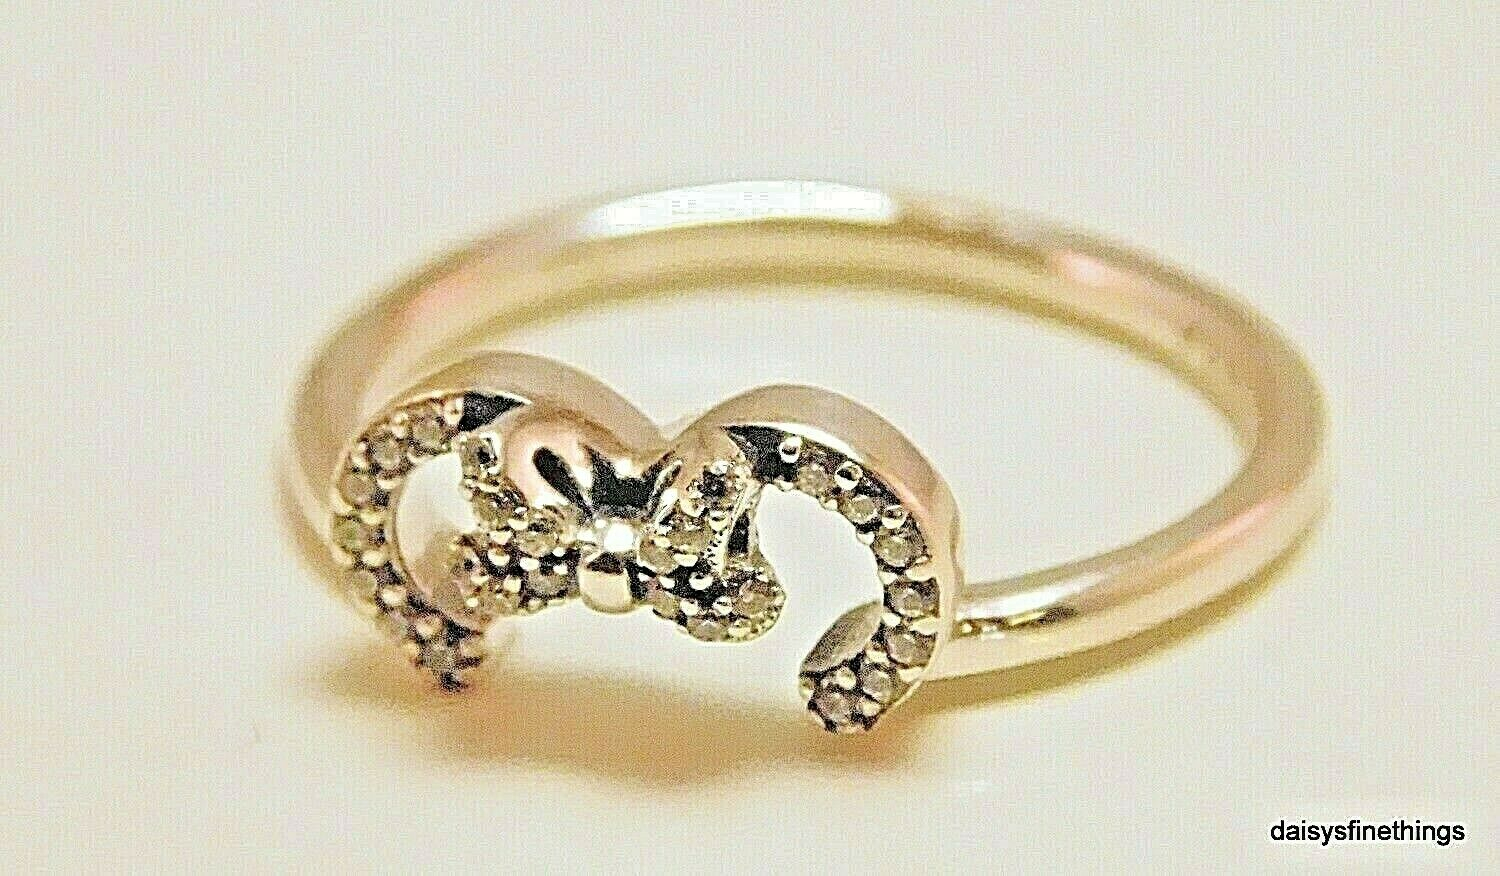 Nwt Authentic Pandora Disney Minnie Silhouette Ring #197509Cz Multiple Size Pertaining To Most Up To Date Disney Minnie Silhouette Rings (Gallery 24 of 25)